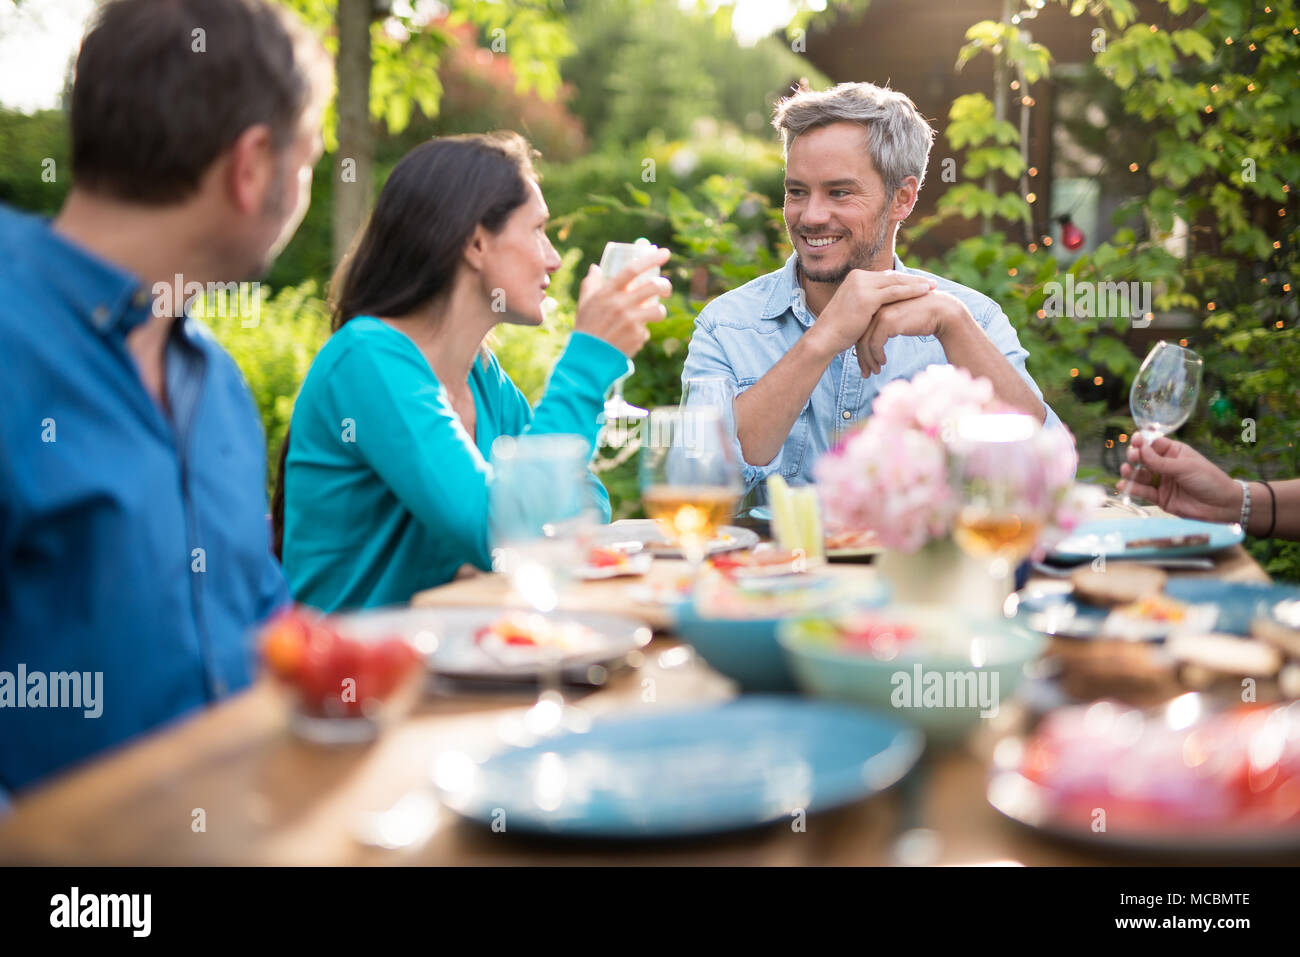 Group of friends gathered around a table in a garden on a summer evening to share a meal and have a good time together - Stock Image